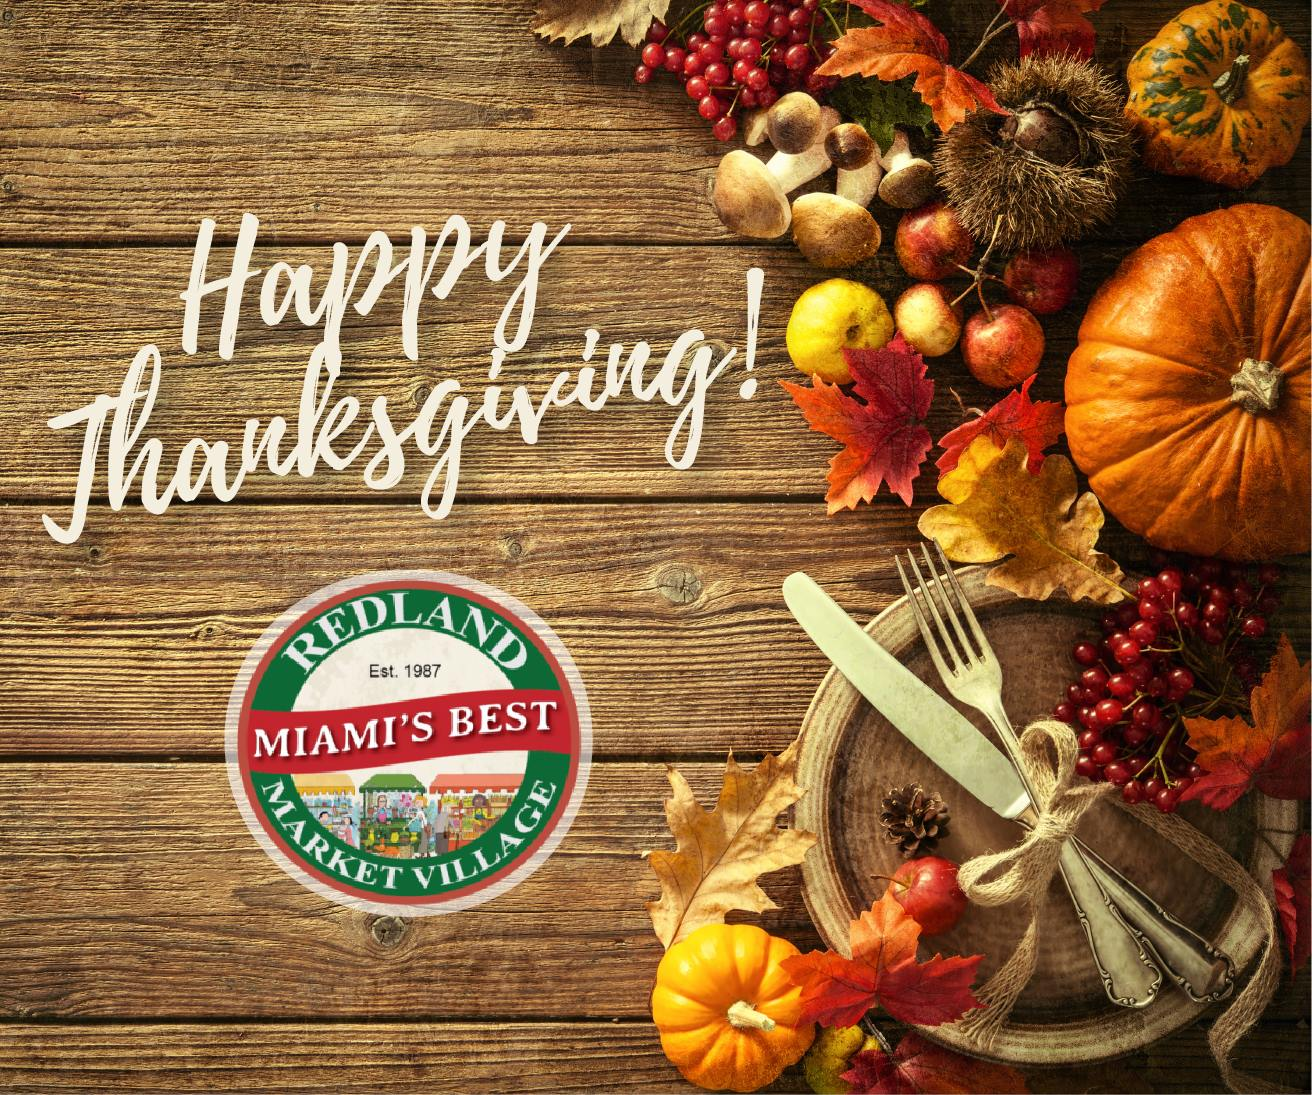 Happy Thanksgiving from all of us at Redland Market Village